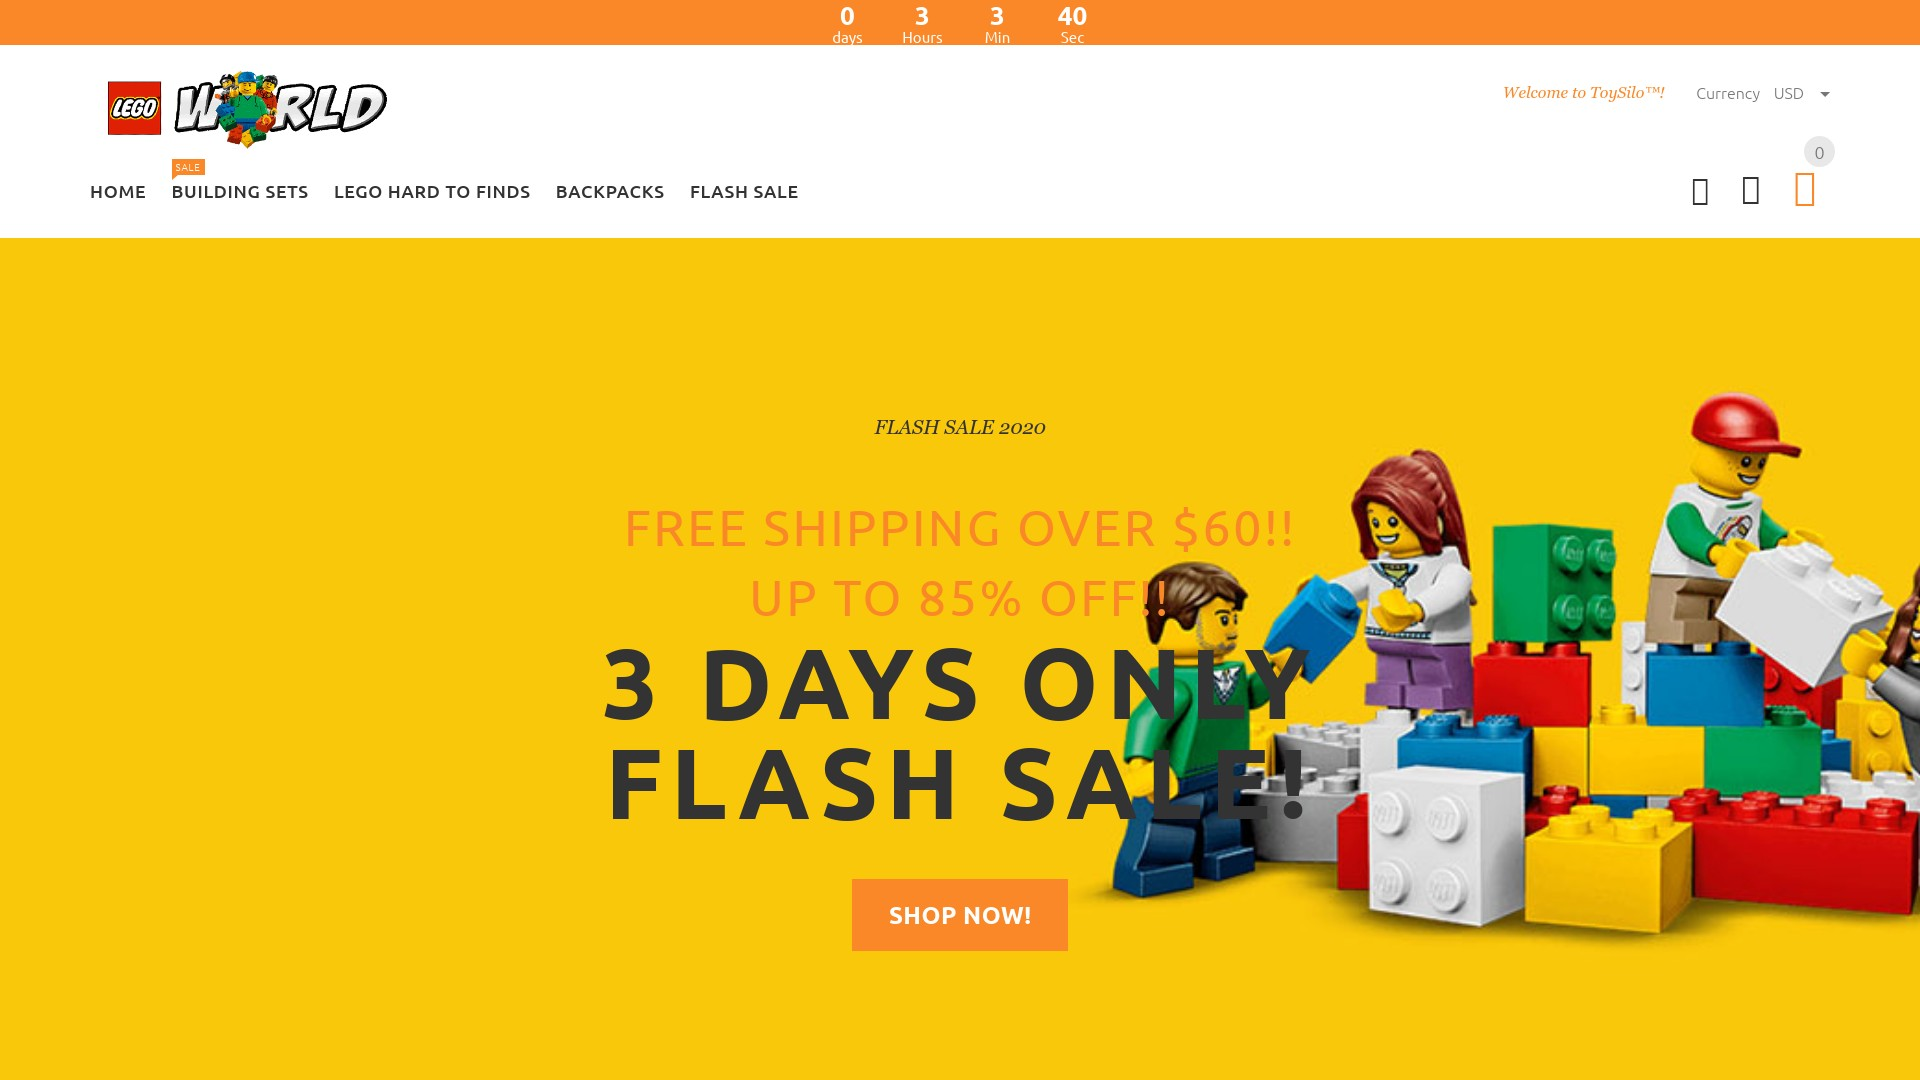 Best Xtoay is a Scam and Fake Lego Online Store